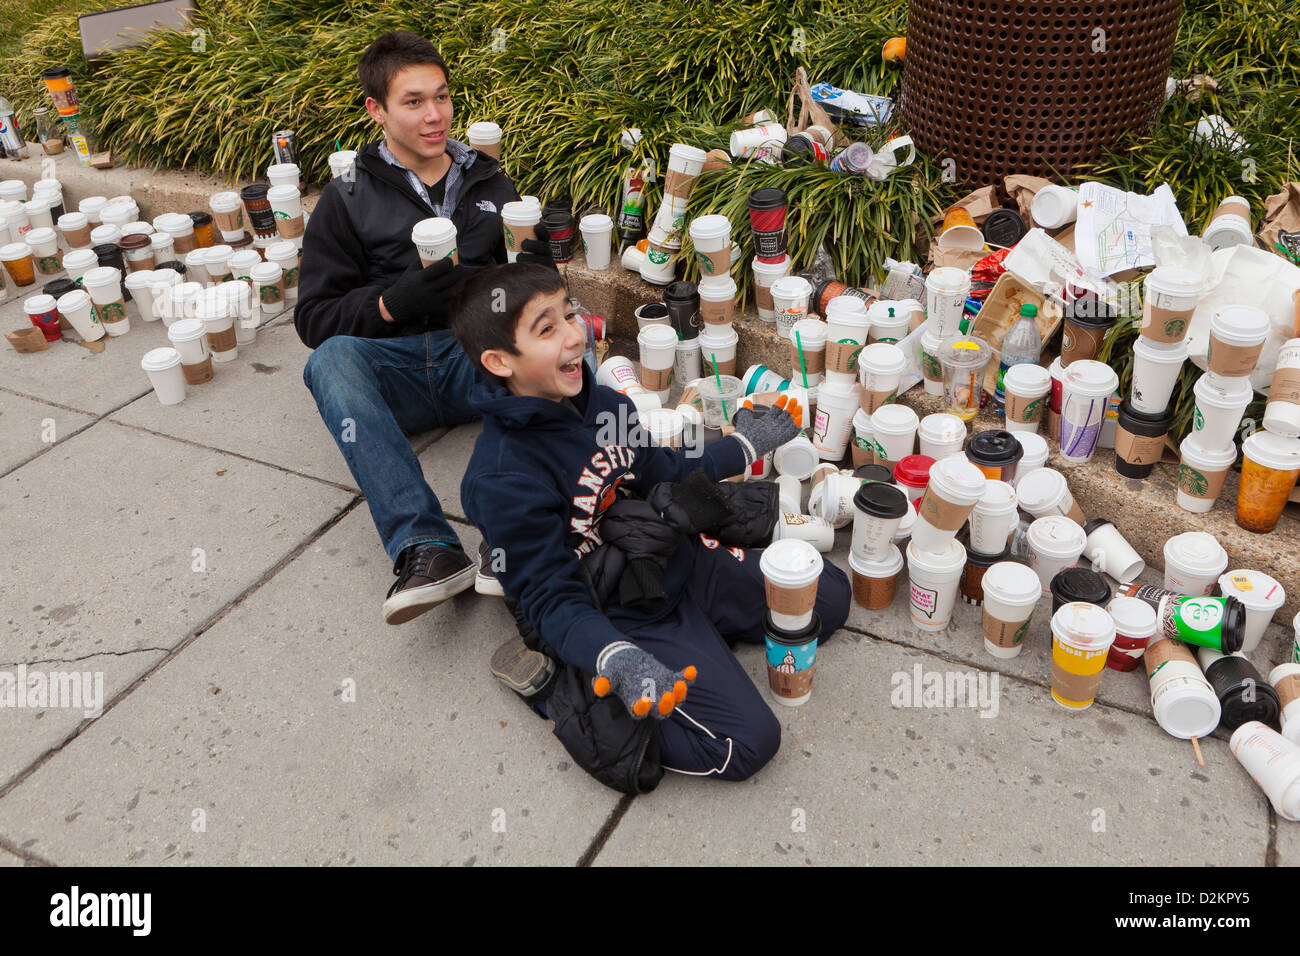 Large pile of discarded coffee cups on public sidewalk - Stock Image